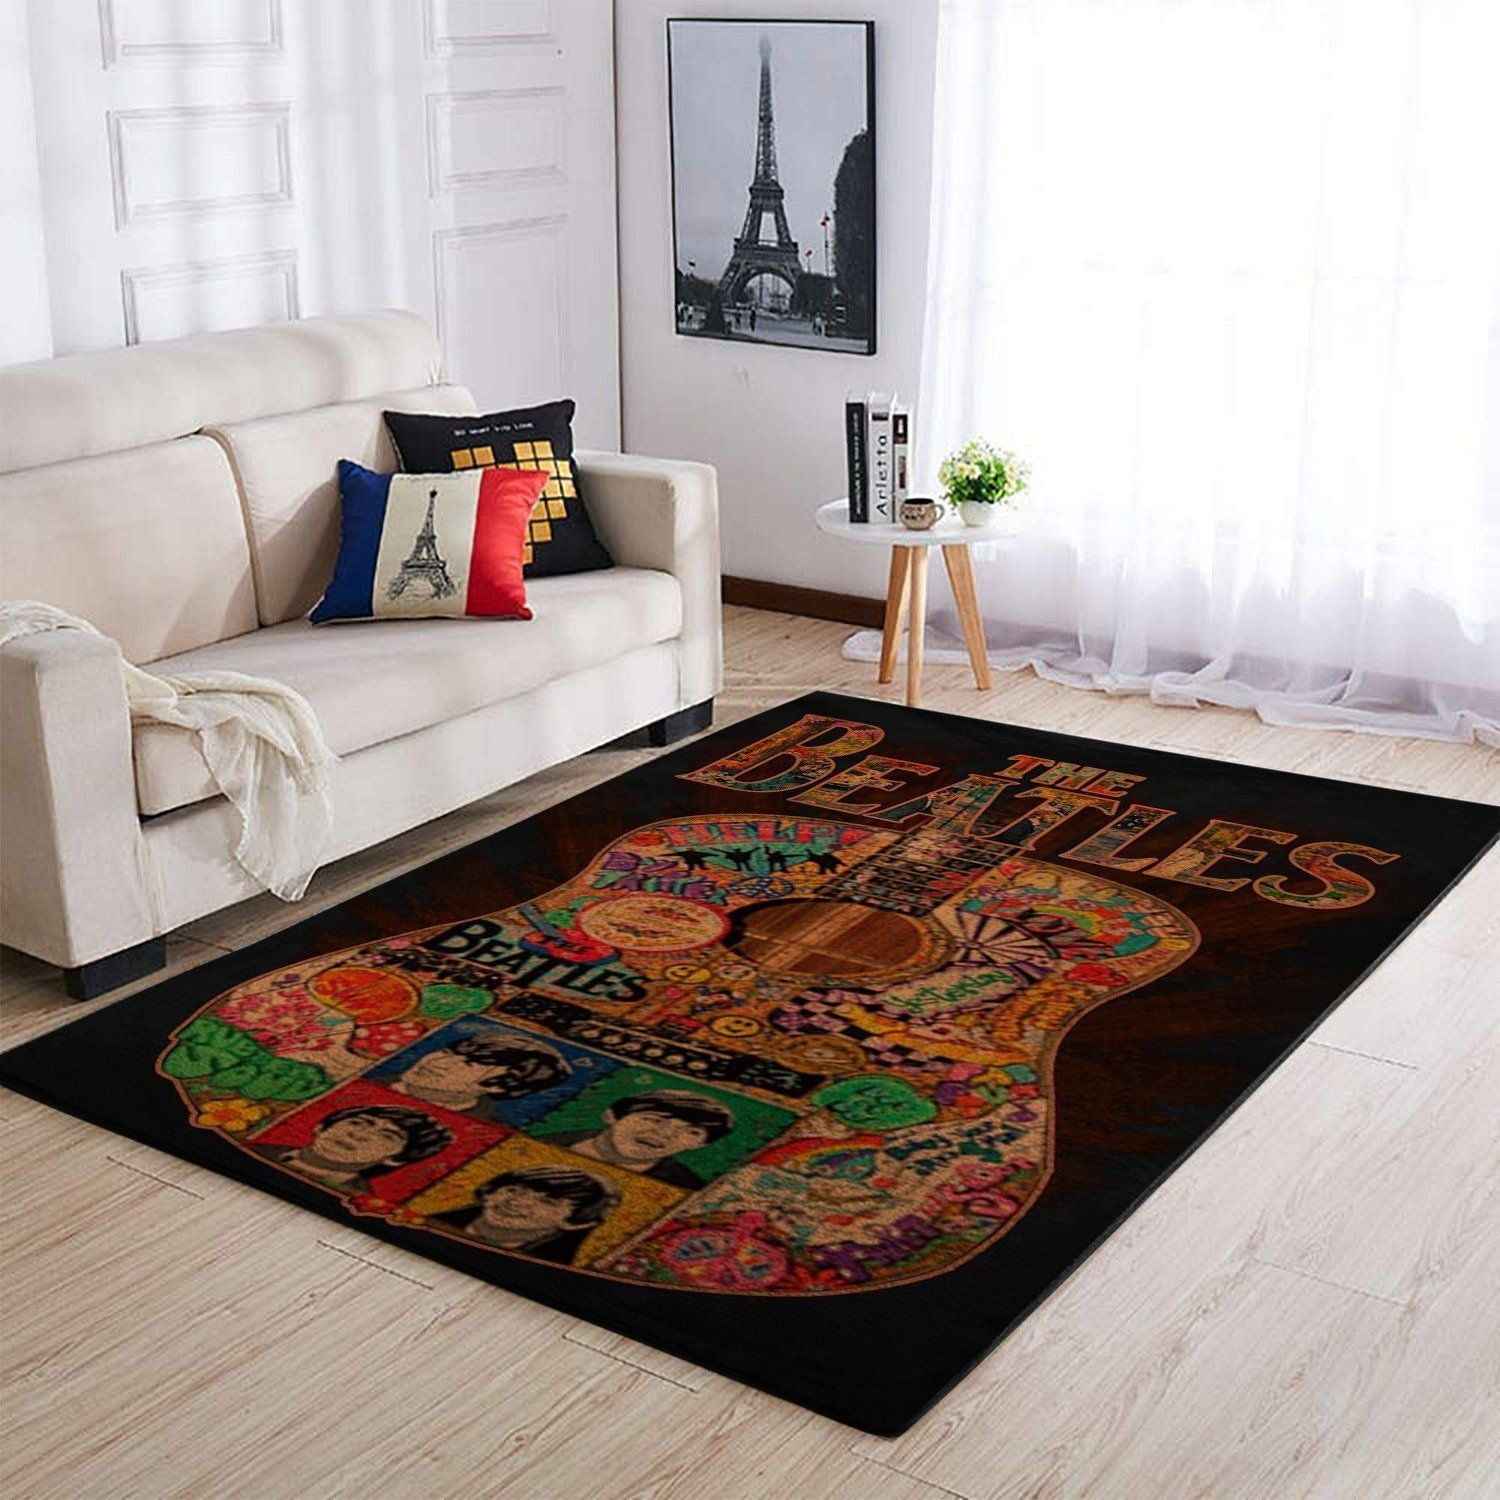 The Beatles Area Rug / Music OFD 191012